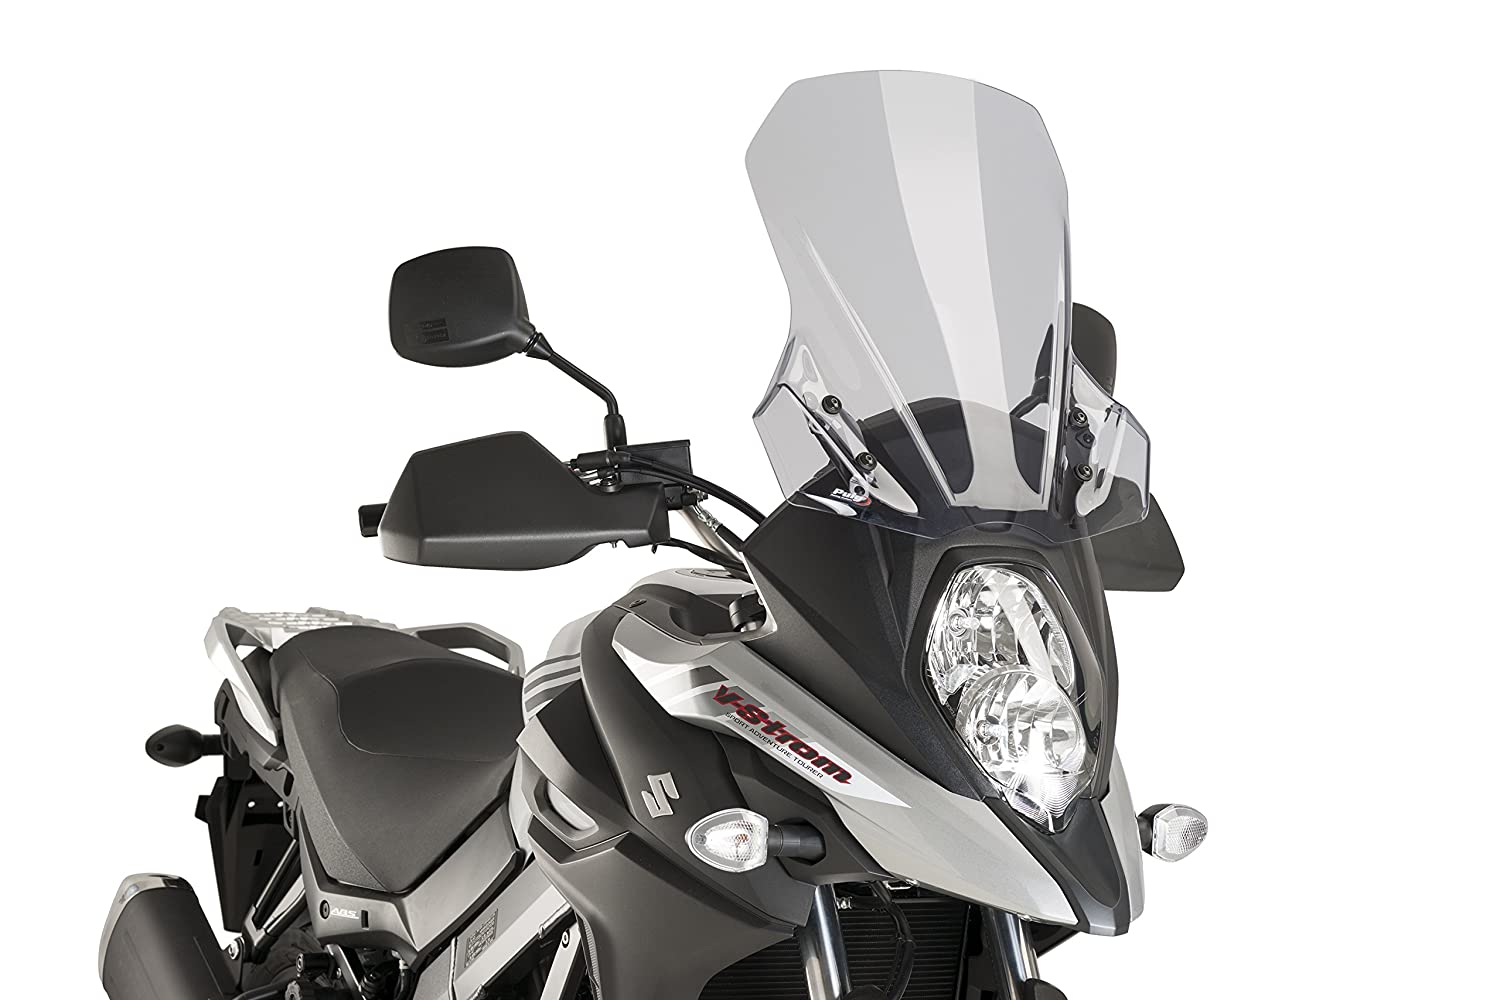 Puig 9719H Touring Screen for Model, Smoked Motoplastic S.A.